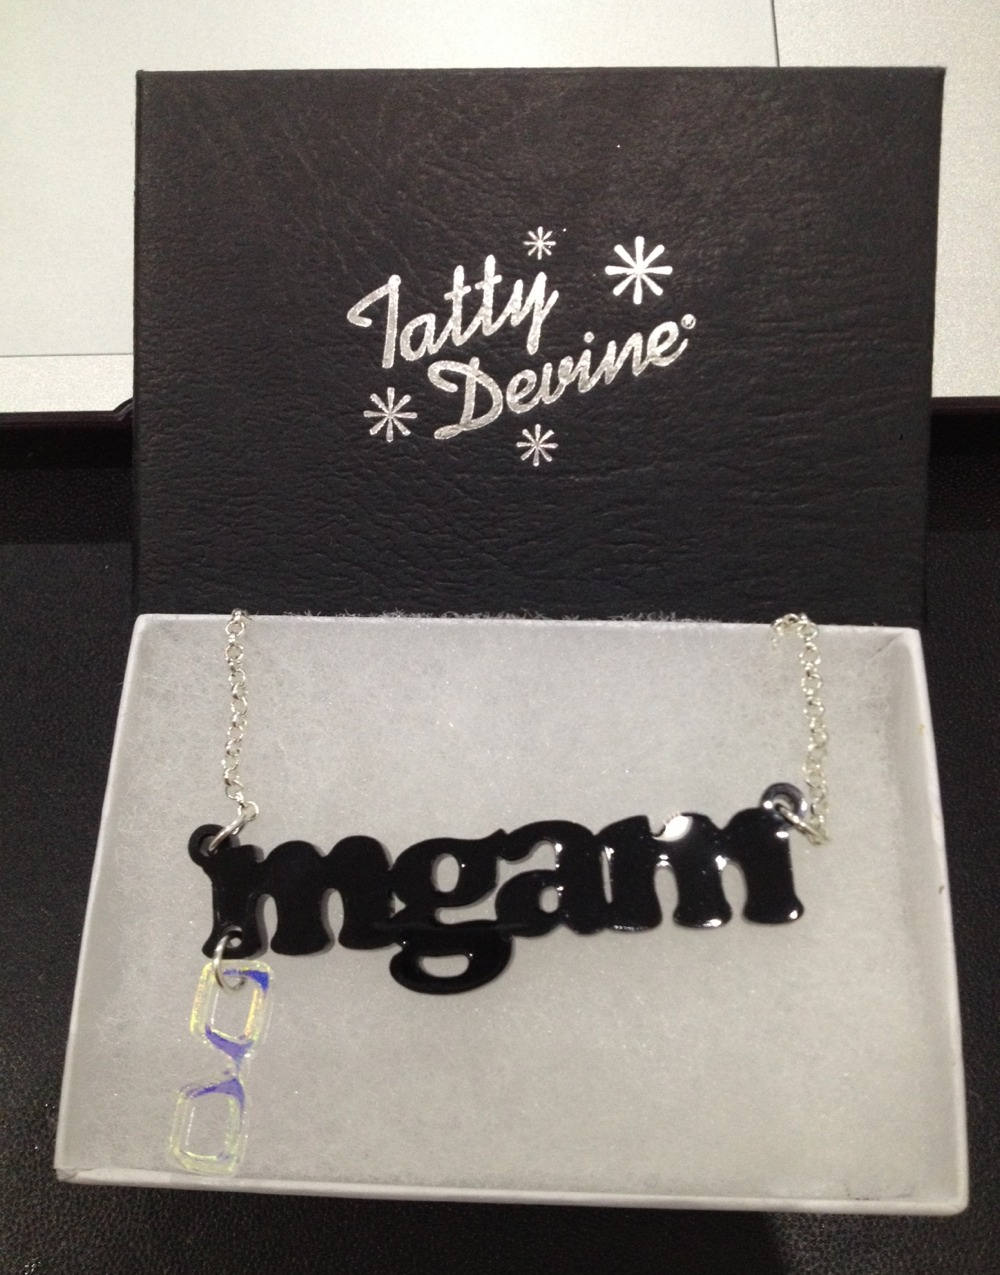 Tatty Devine MGAM Name Necklace